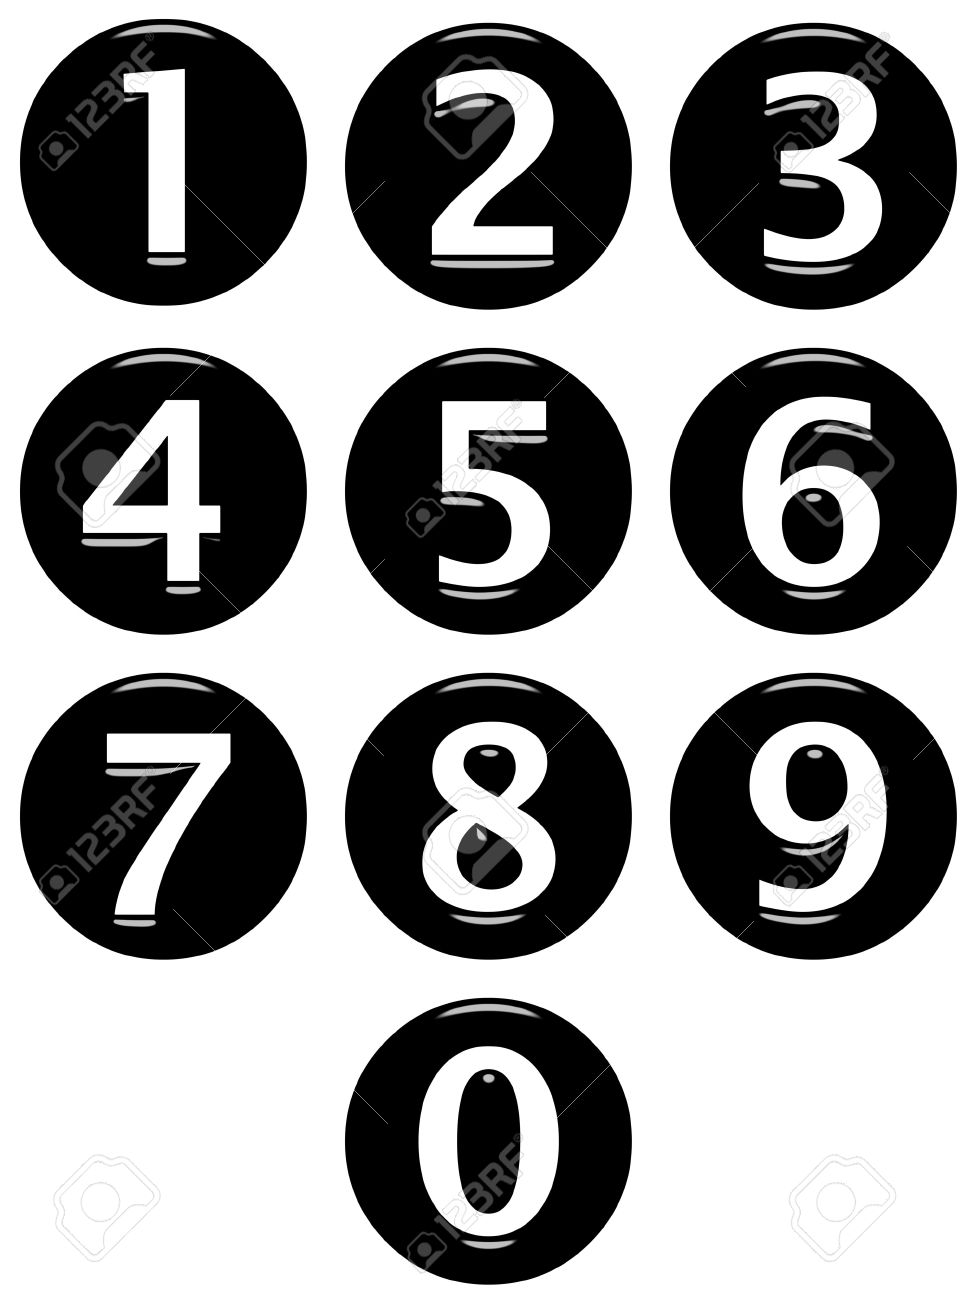 3d framed numbers Stock Photo - 7433064